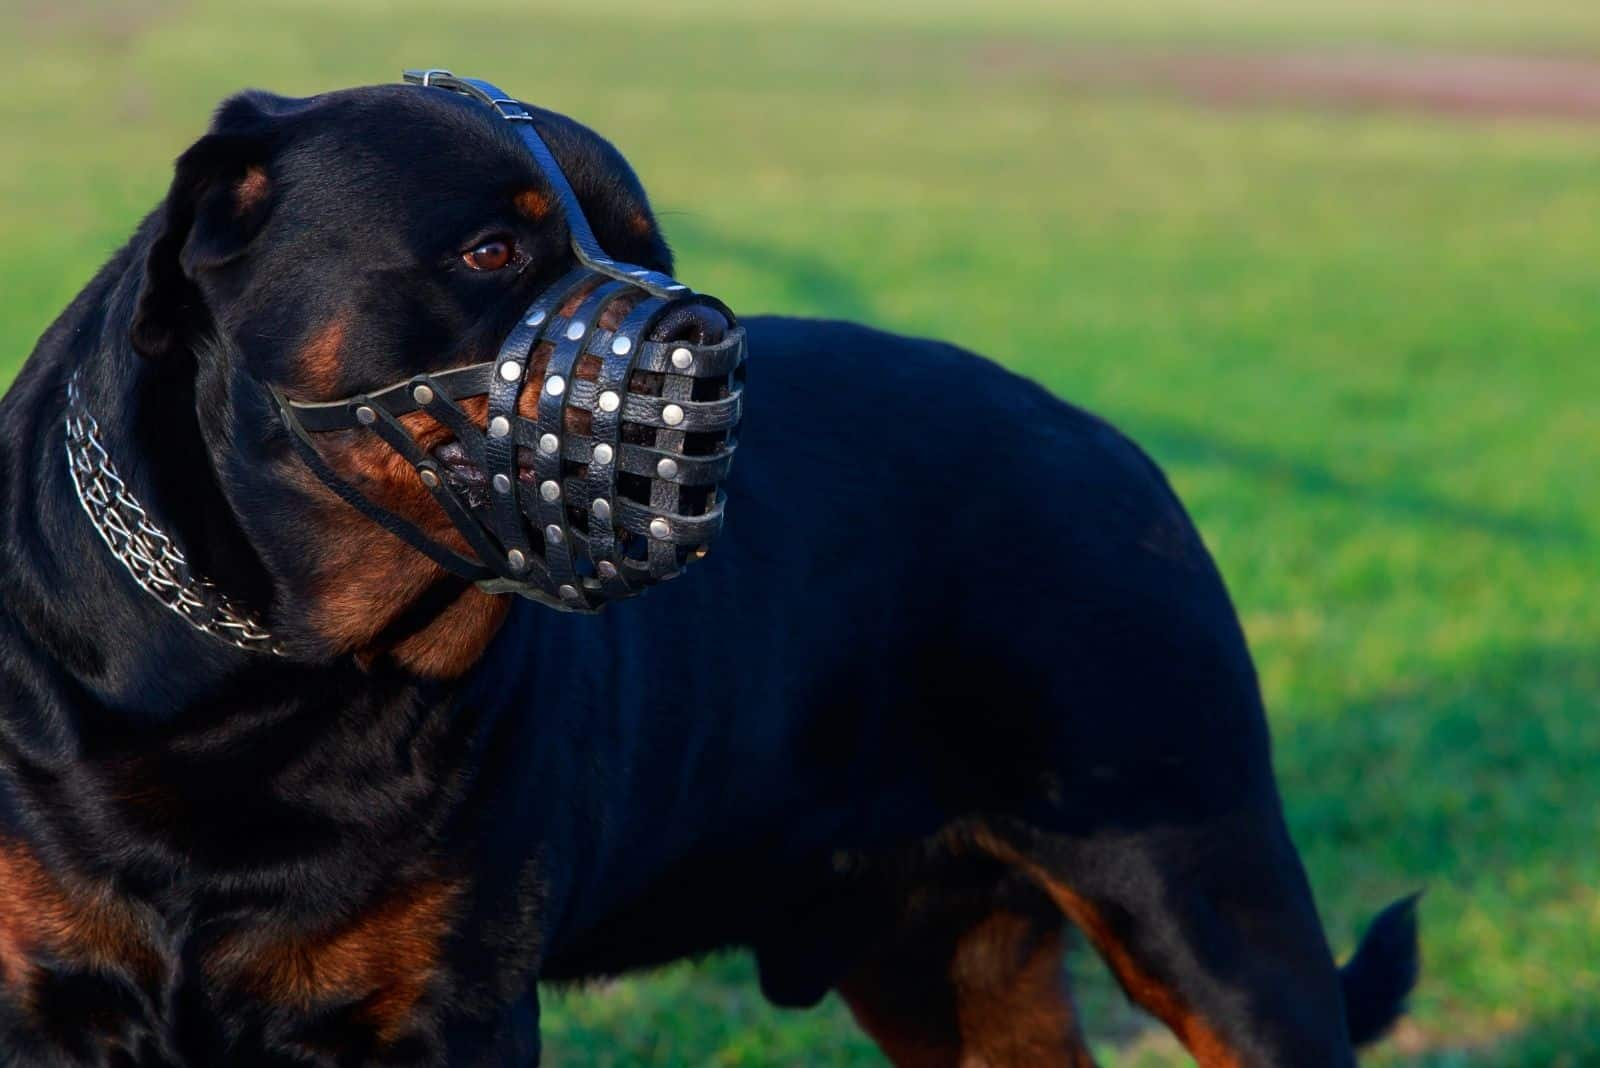 dog breed rottweiler with a muzzle standing outdoors